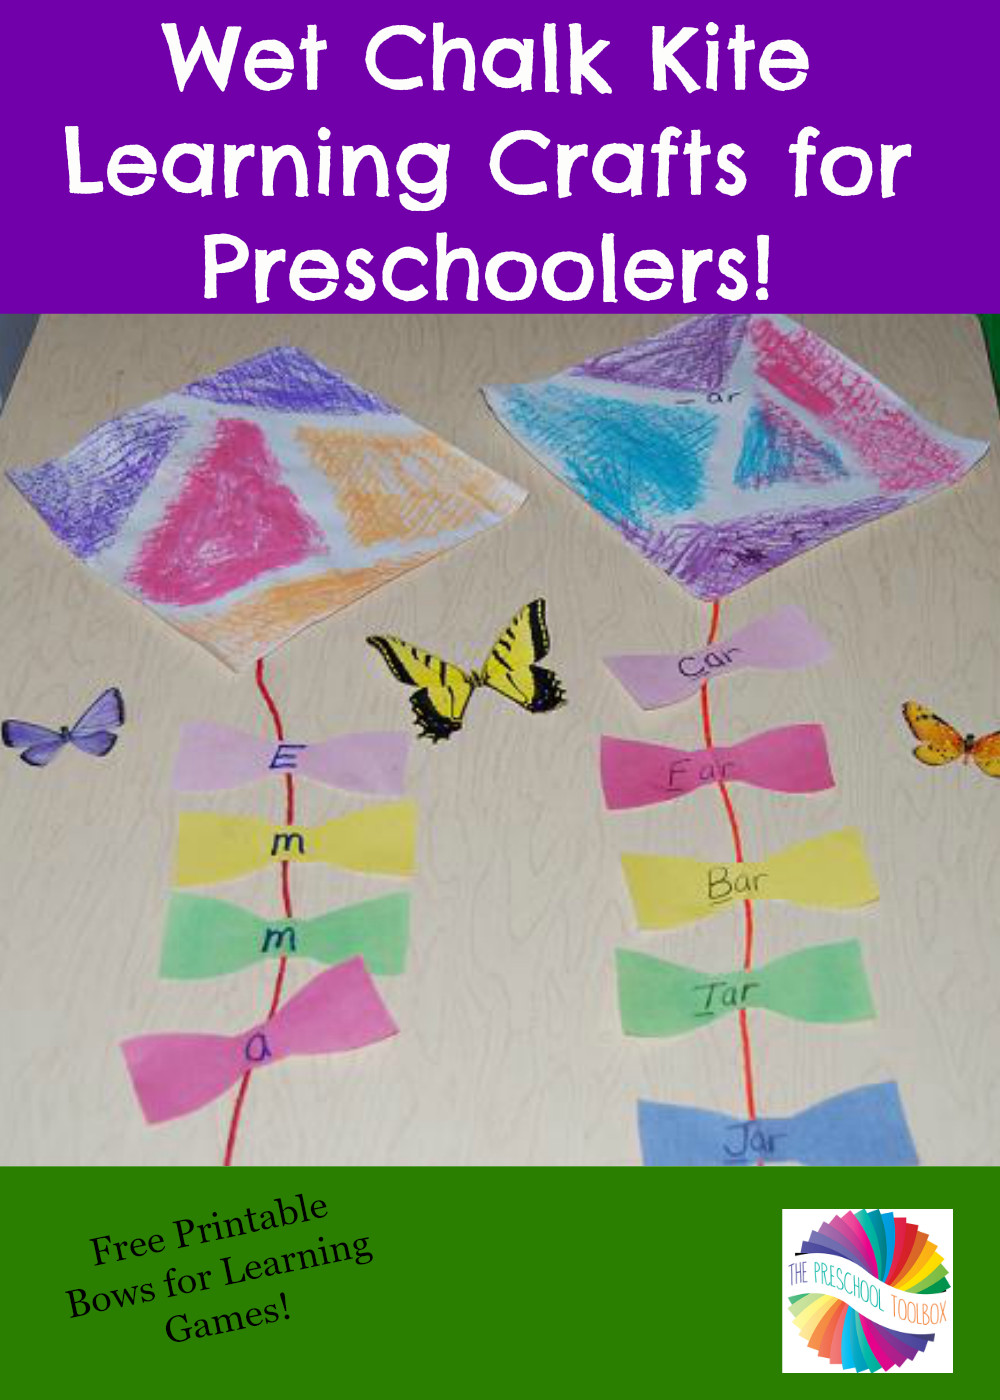 Best ideas about Learning Crafts For Preschoolers . Save or Pin Wet Chalk Kite Learning Crafts for Preschoolers • The Now.